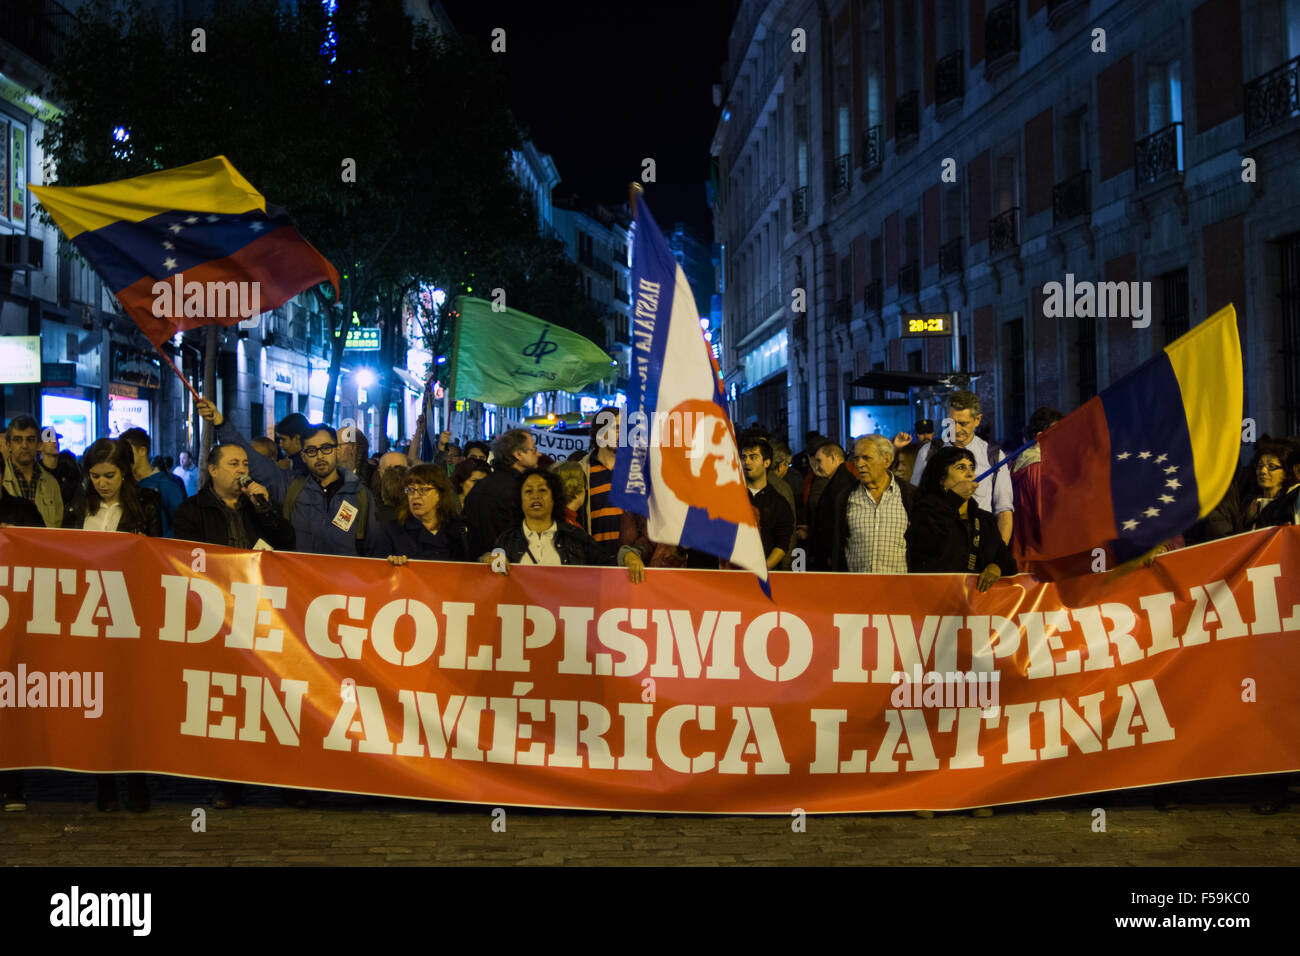 Madrid, Spain. 30th Oct, 2015. Peoplebring banner and flags during a demonstration in Madrid against imperialism - Stock Image